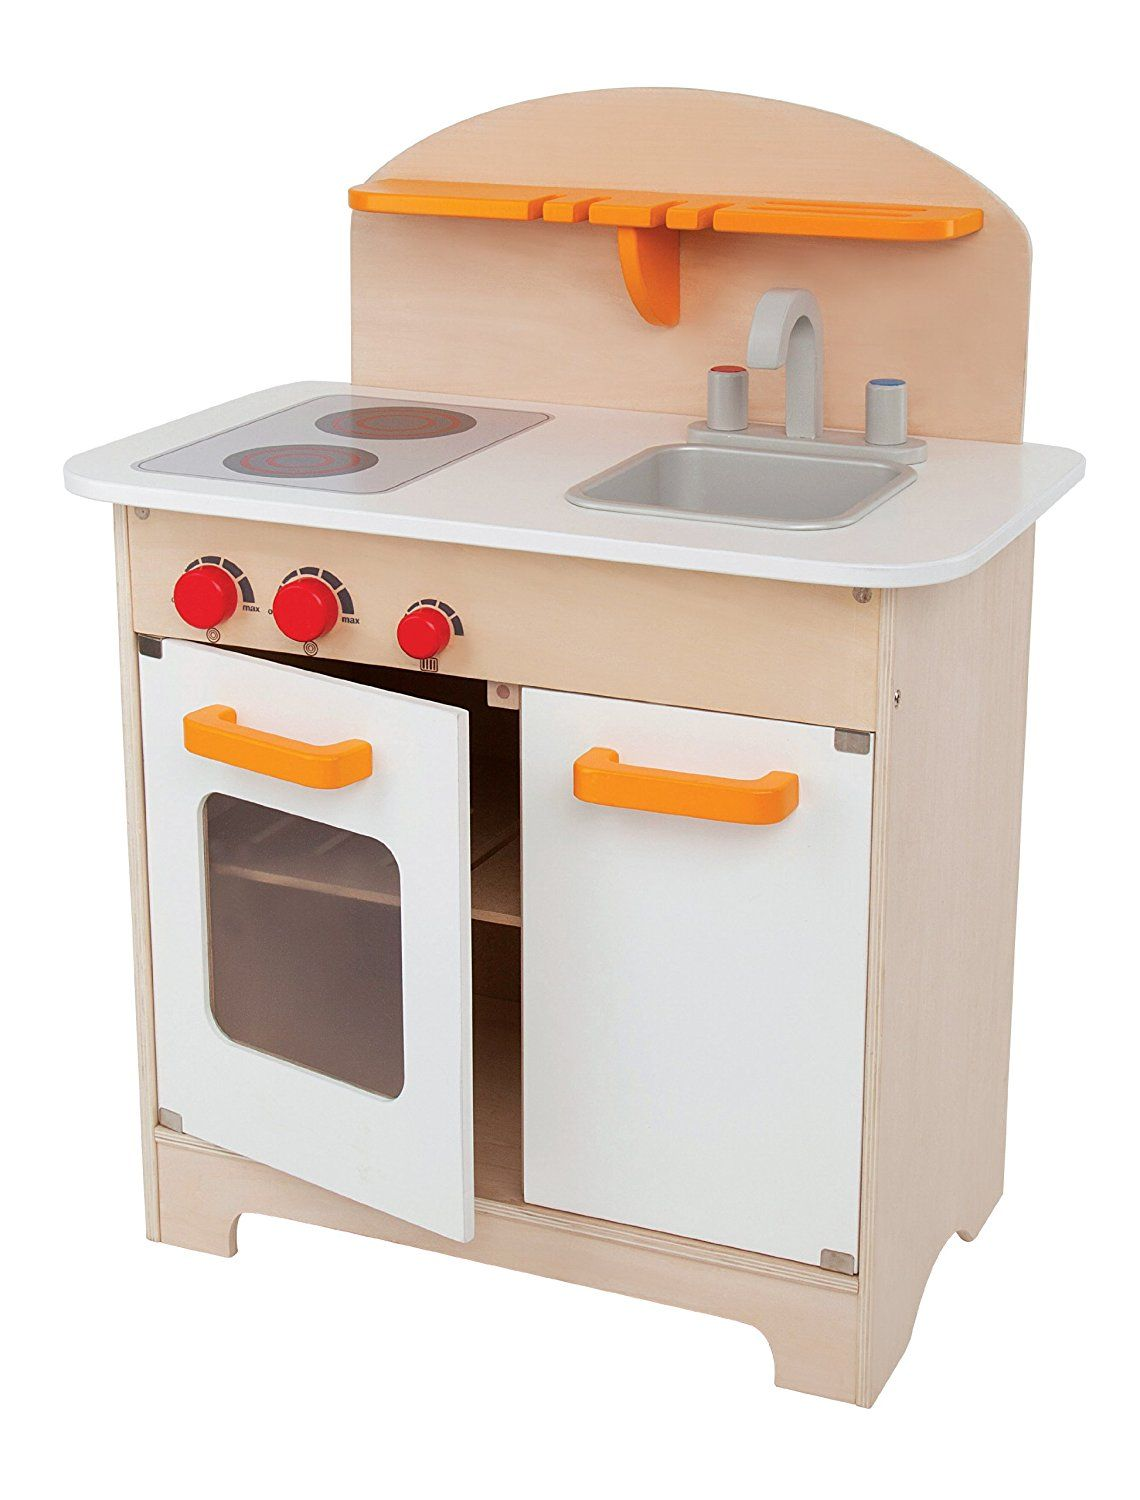 amazoncom hape playfully delicious gourmet kitchen wooden play set white